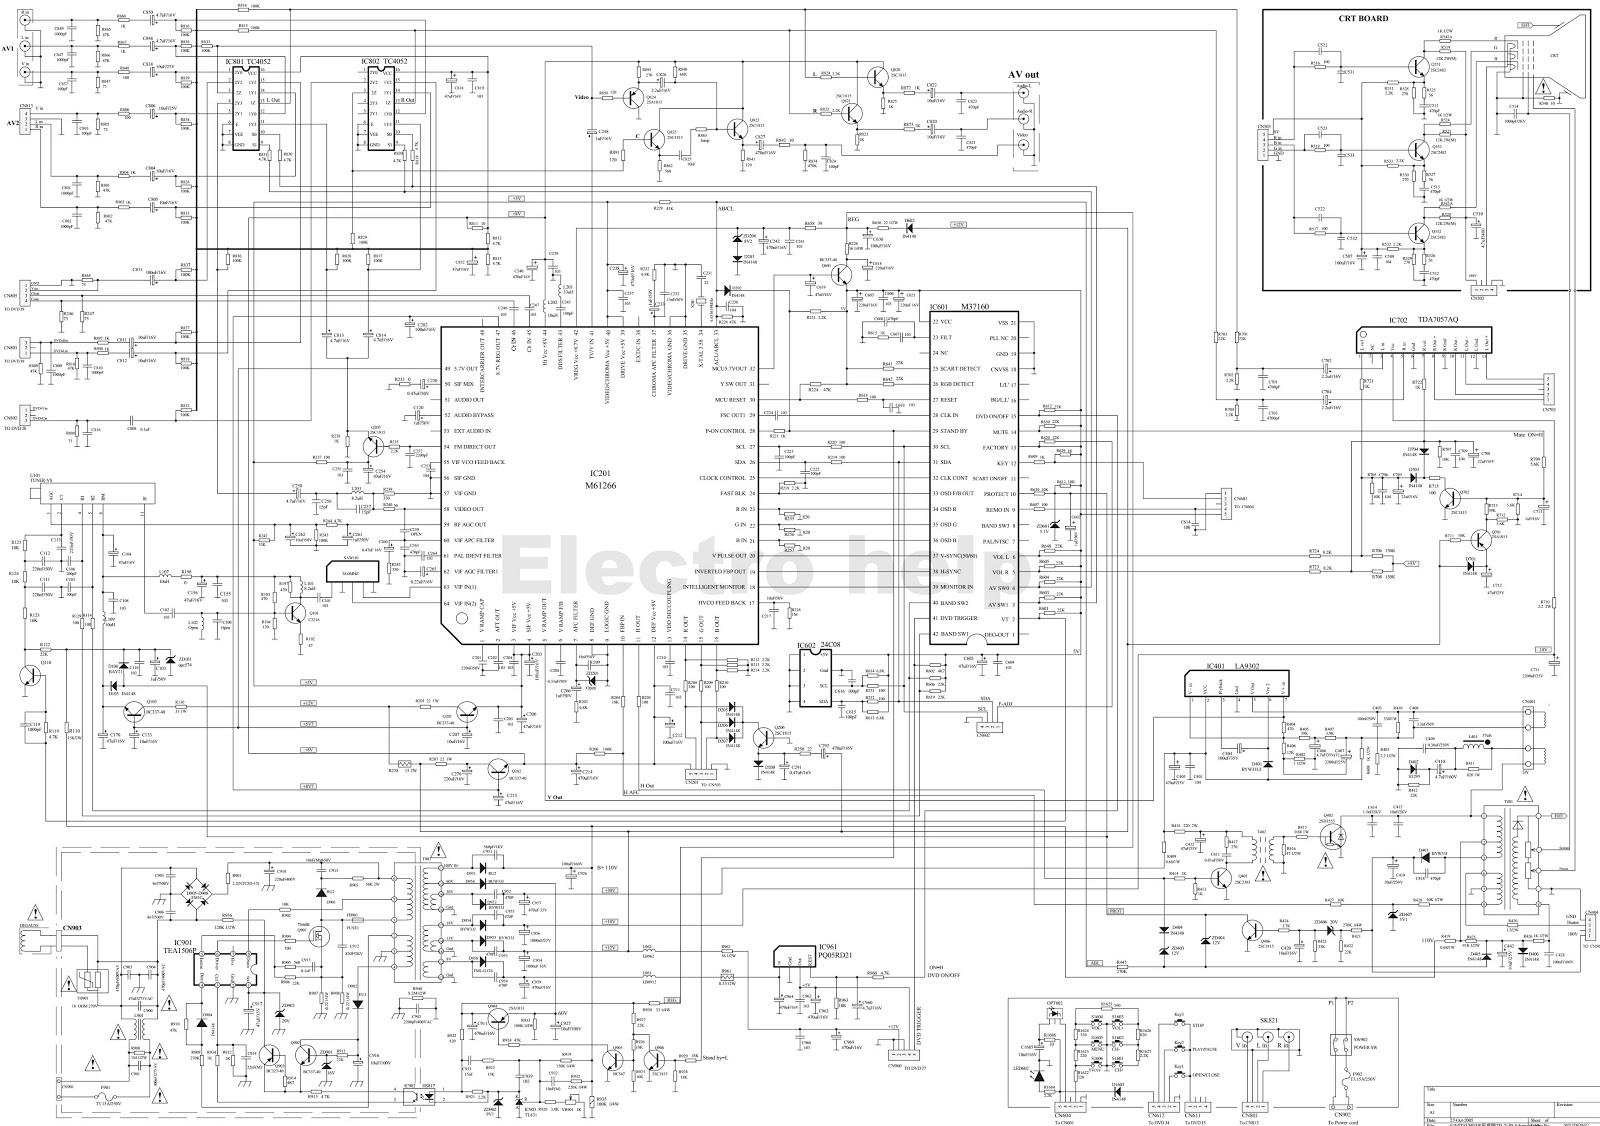 Re 40 7303 A Wiring Diagram 27 Images Crt Hyundai Td21p8 Tv Circuit Electro Help Basic Electrical Diagrams At Highcare